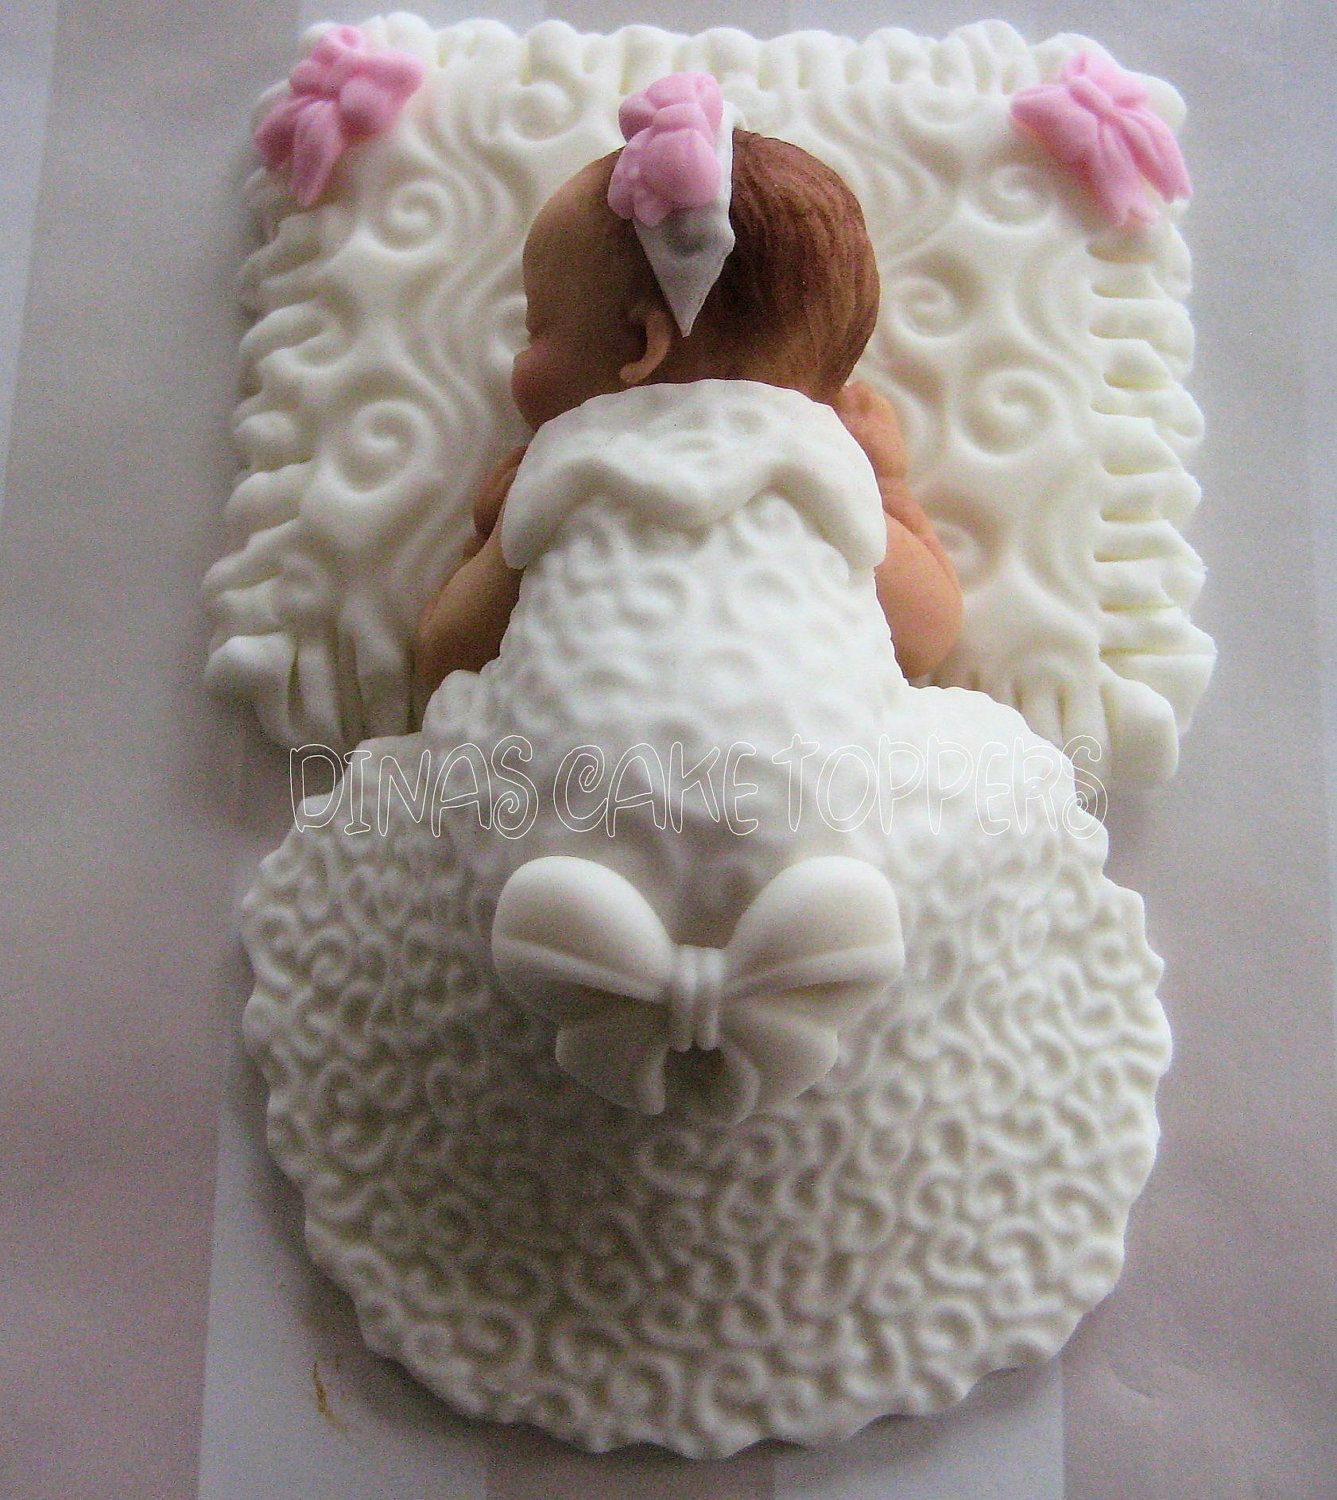 Christening Cake Design For Baby Girl : CHRISTENING BAPTISM Baby Girl Cake Topper door ...